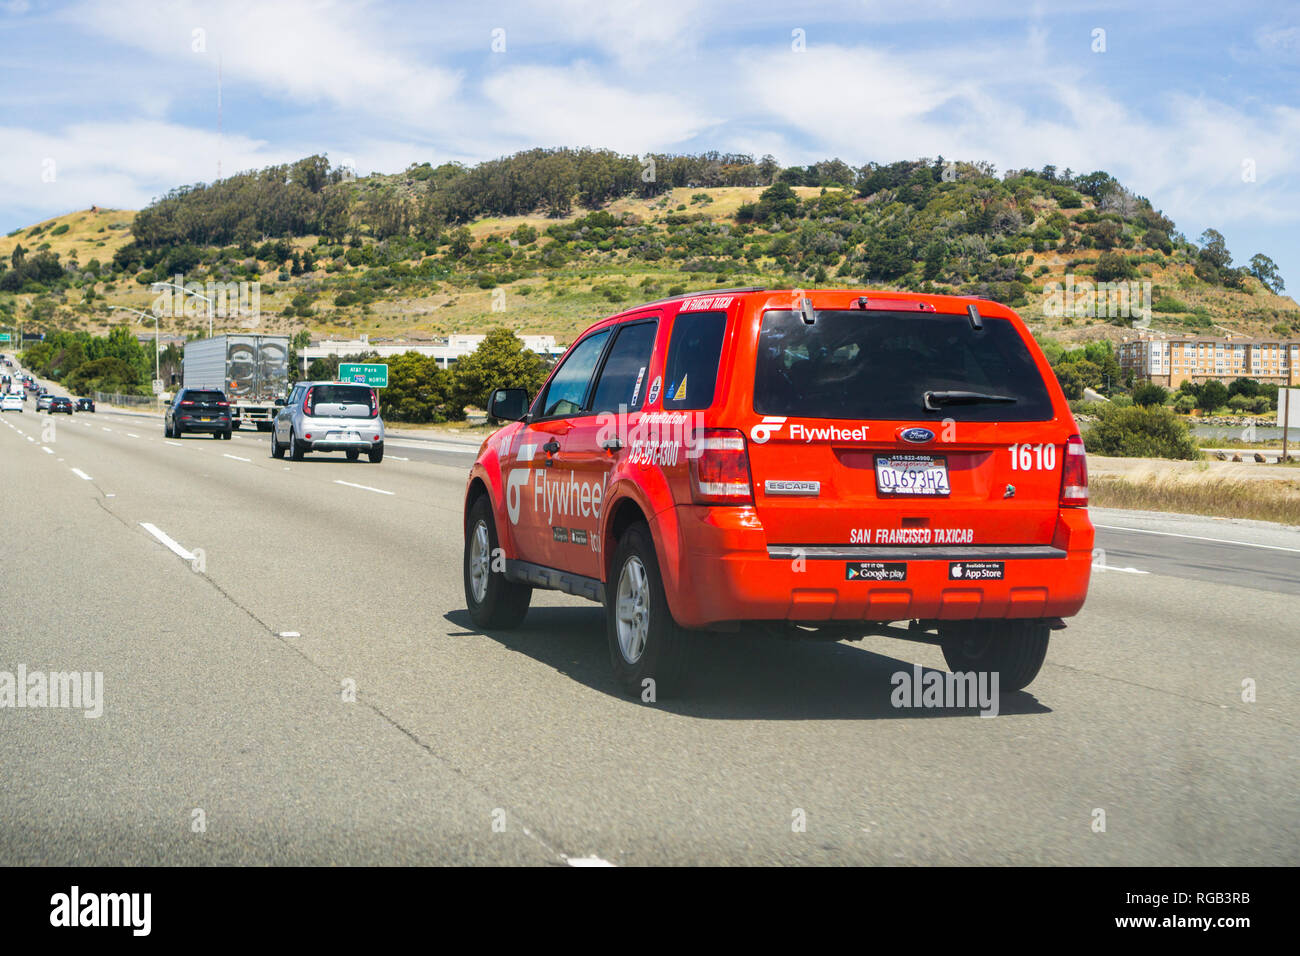 May 6, 2018 San Francisco / CA / USA - Flywheel Taxicab driving on the highway - Stock Image